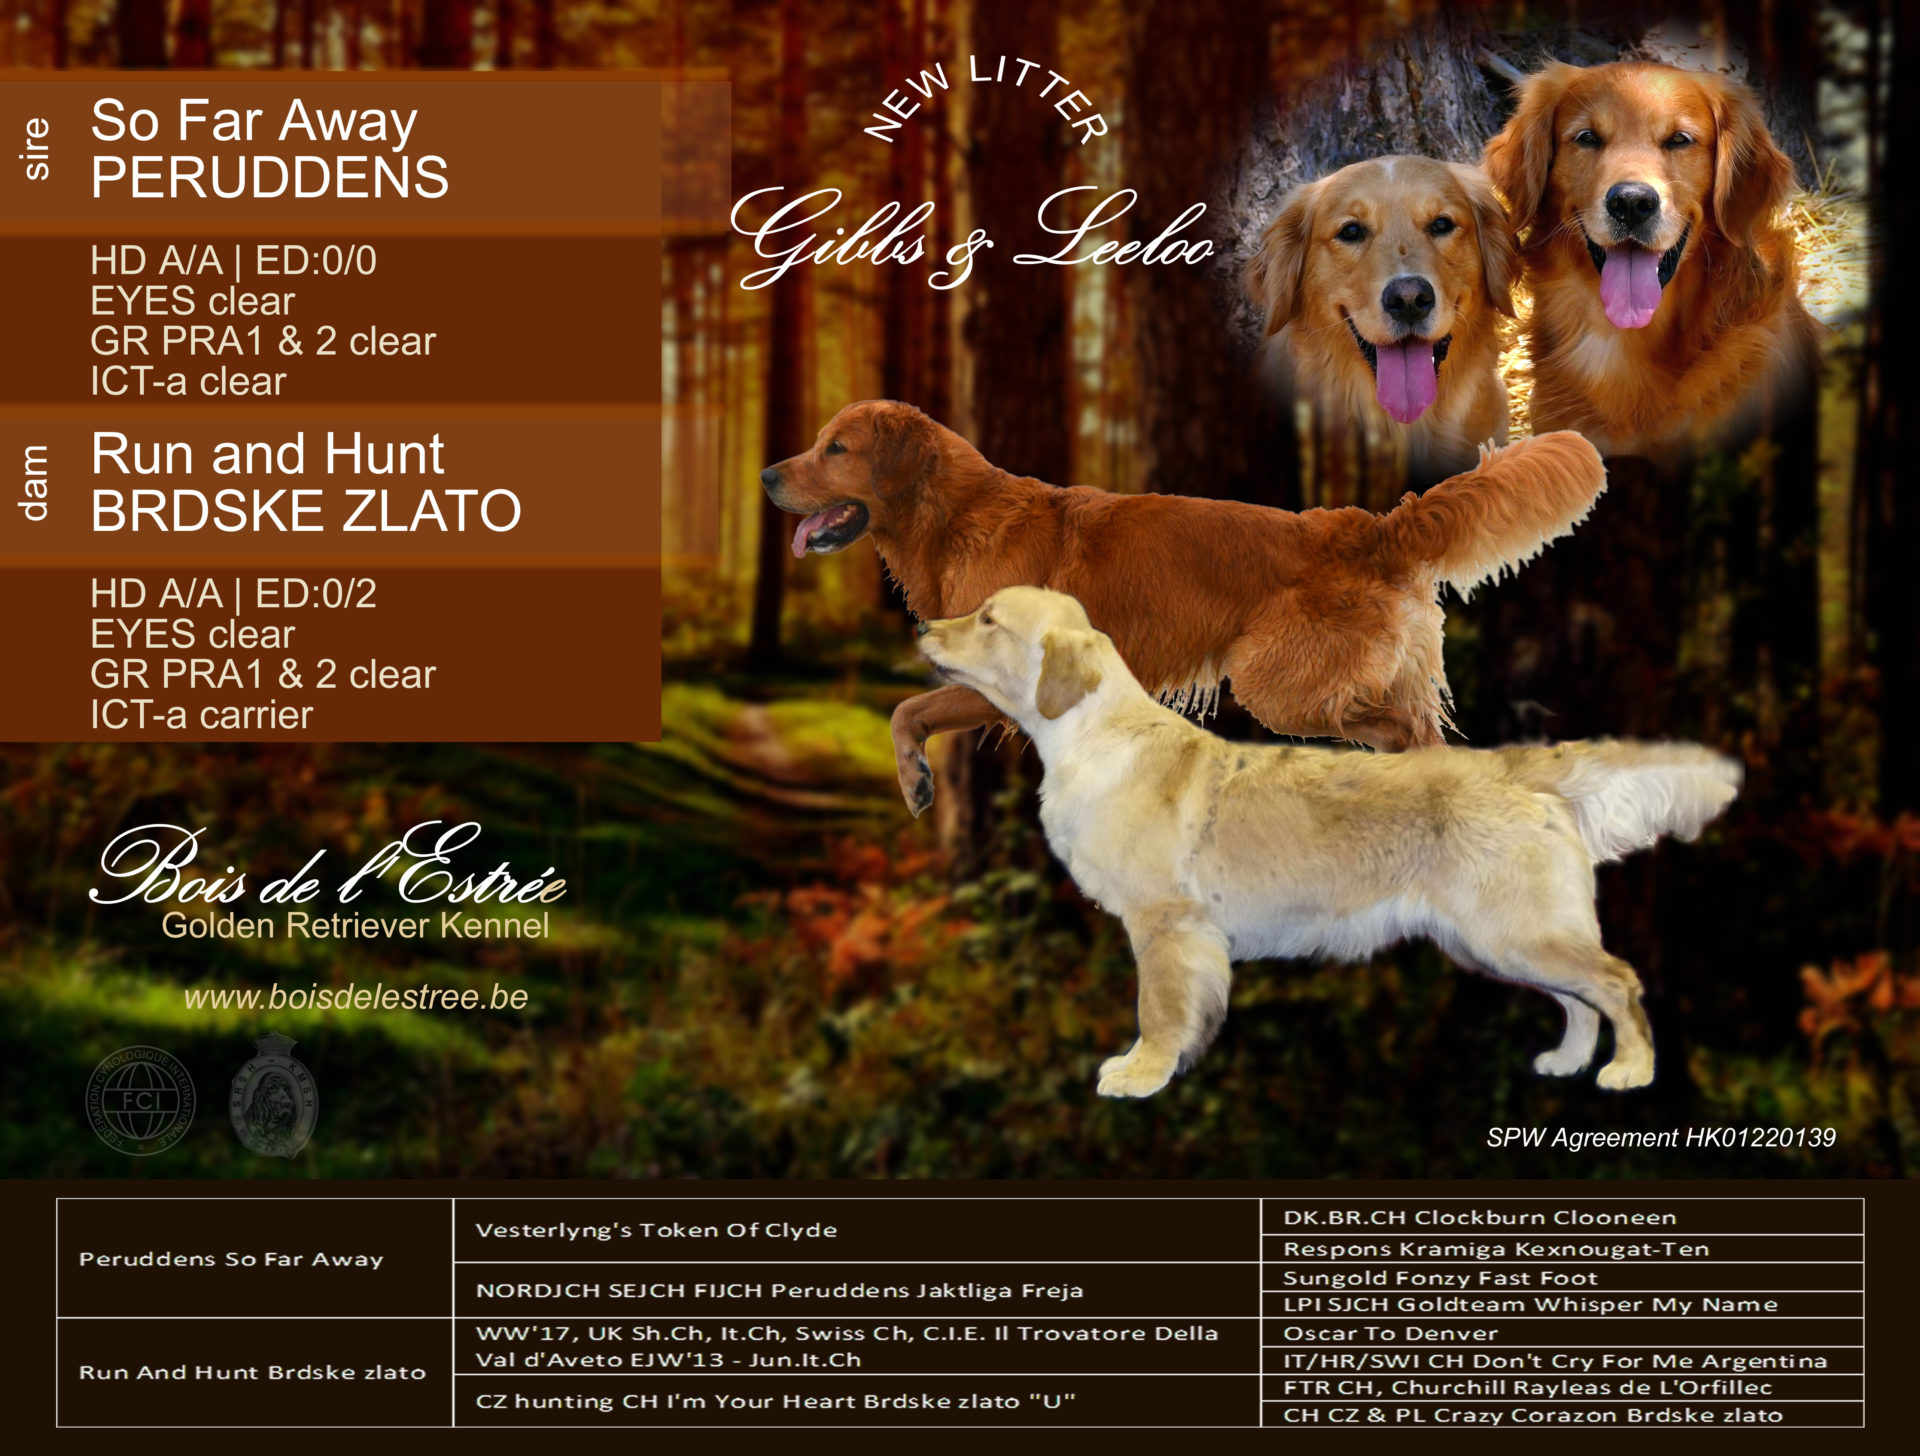 Last litter November 2019 – Run And Hunt Brdské zlato